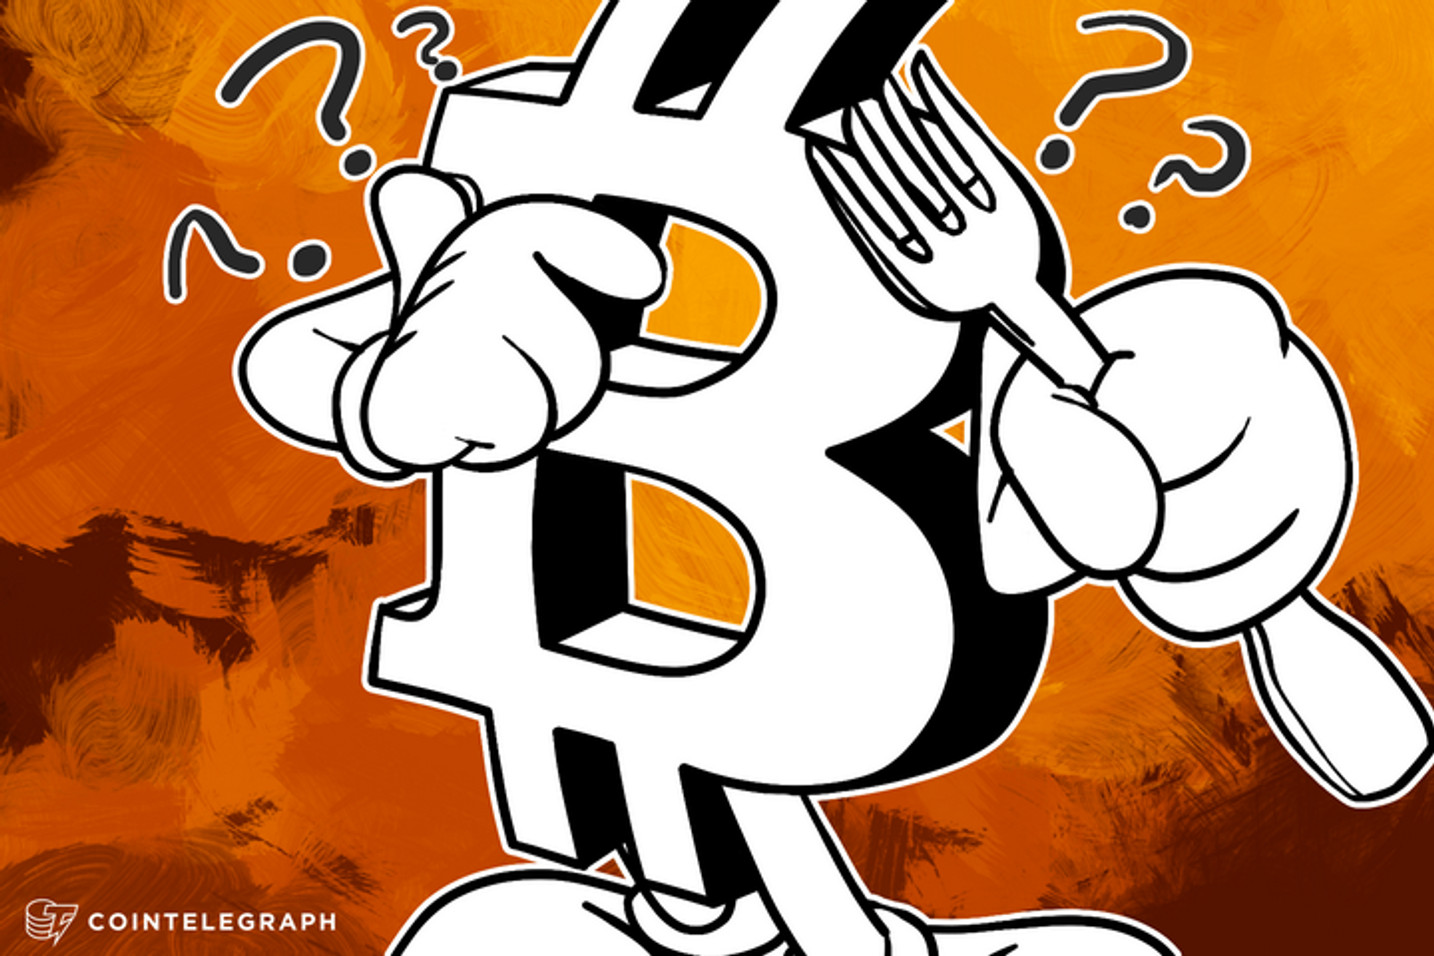 Bitcoin 101: What is a 'Fork' and How Does it Work?